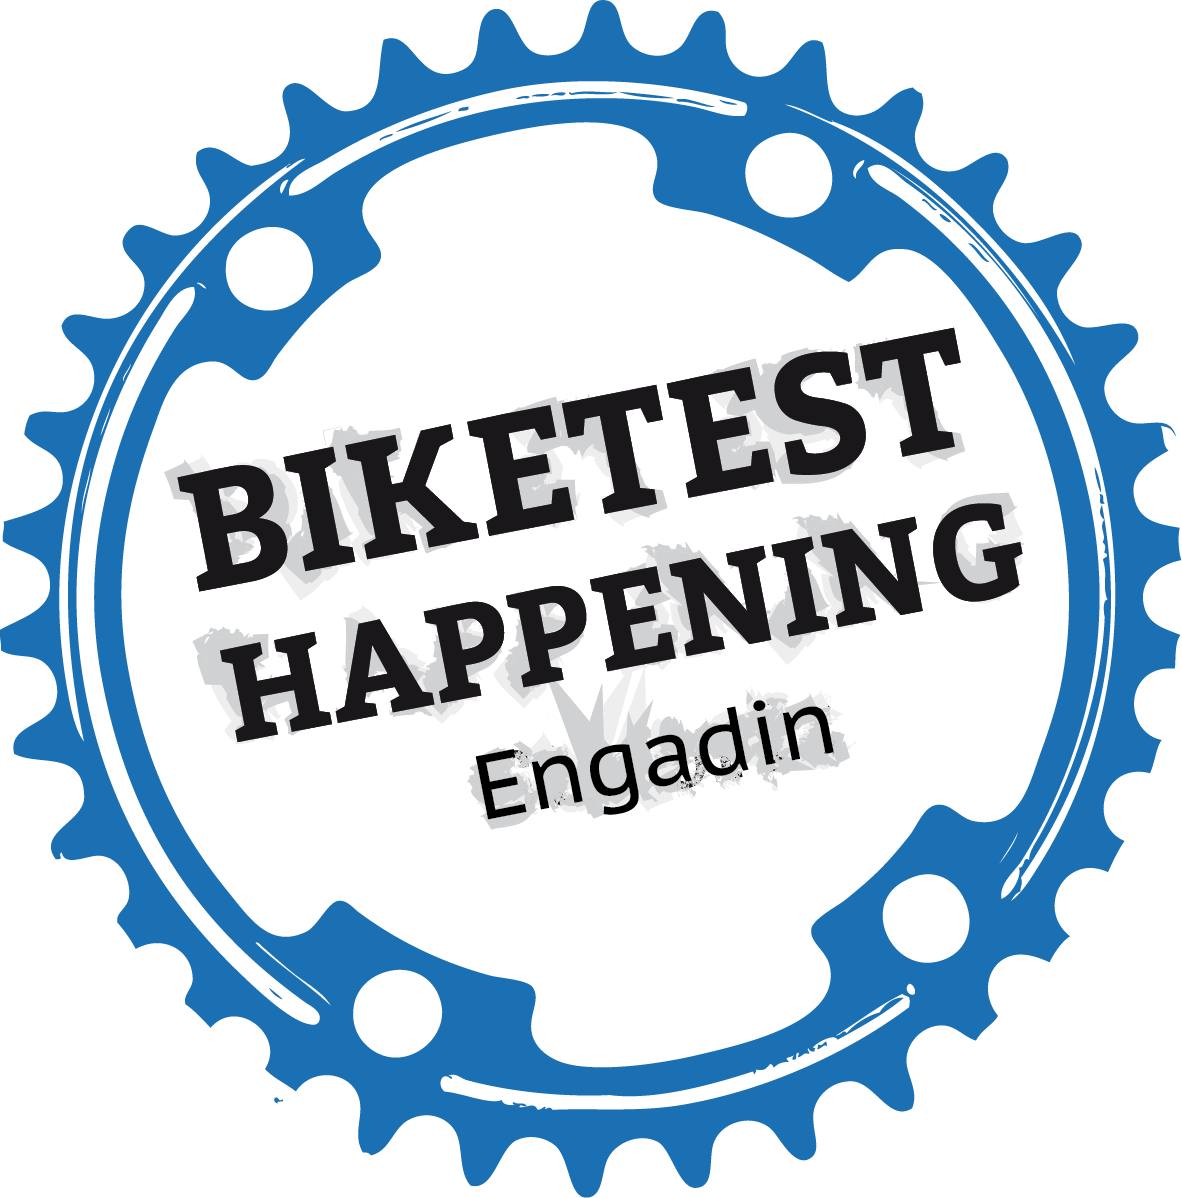 BIKETEST HAPPENING ENGADIN